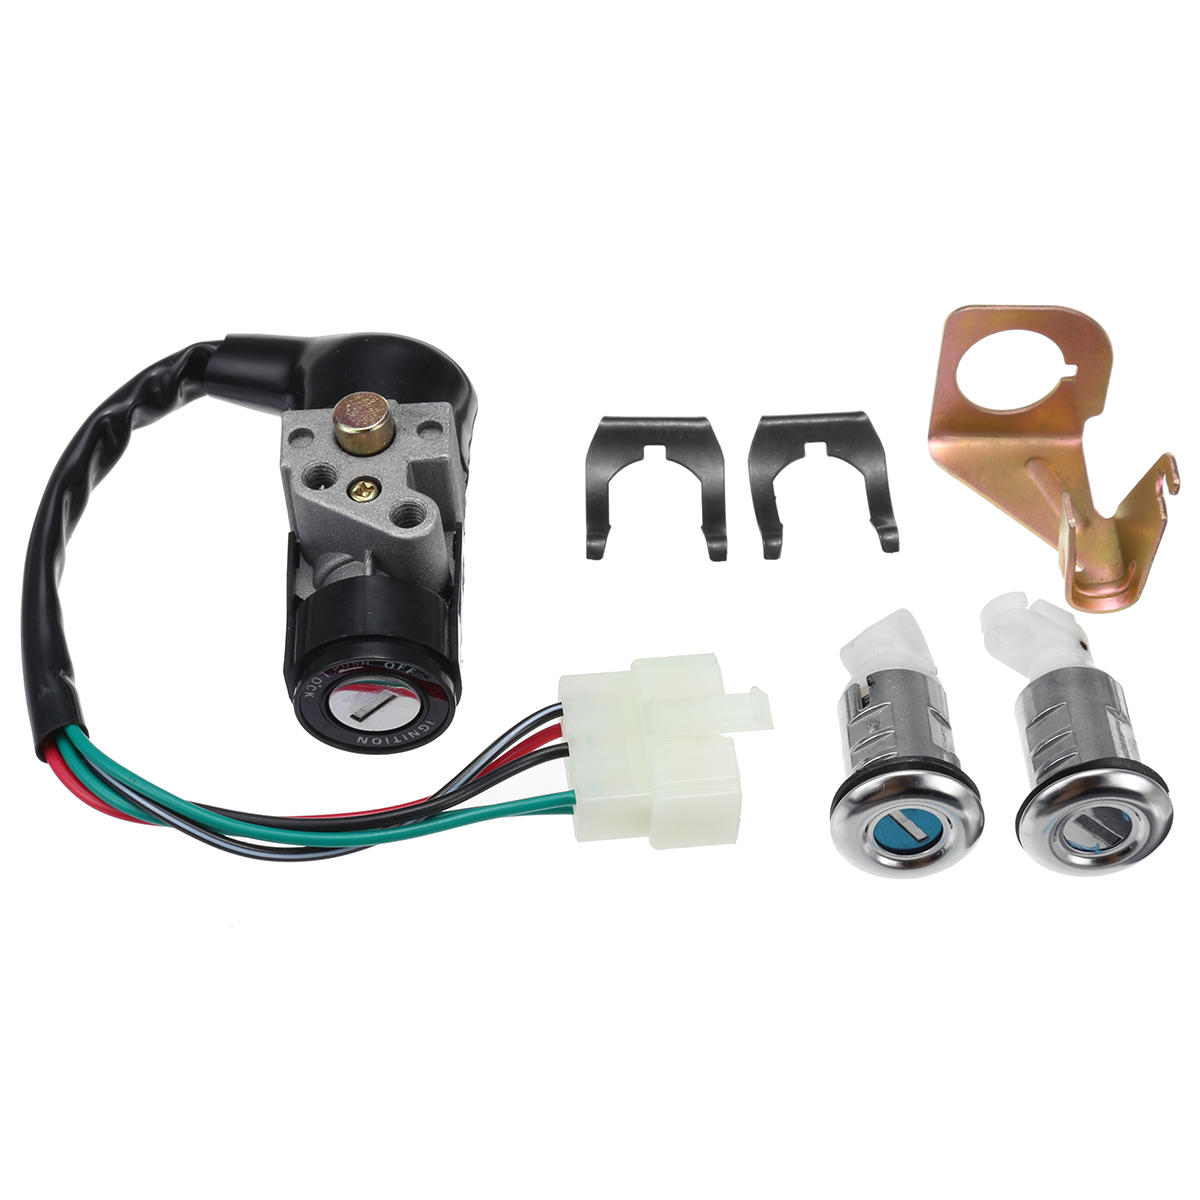 hight resolution of ignition switch key set 5 wires for 150cc roketa jonway moped scooter ignition switch key set on tank 50cc scooter motor diagram